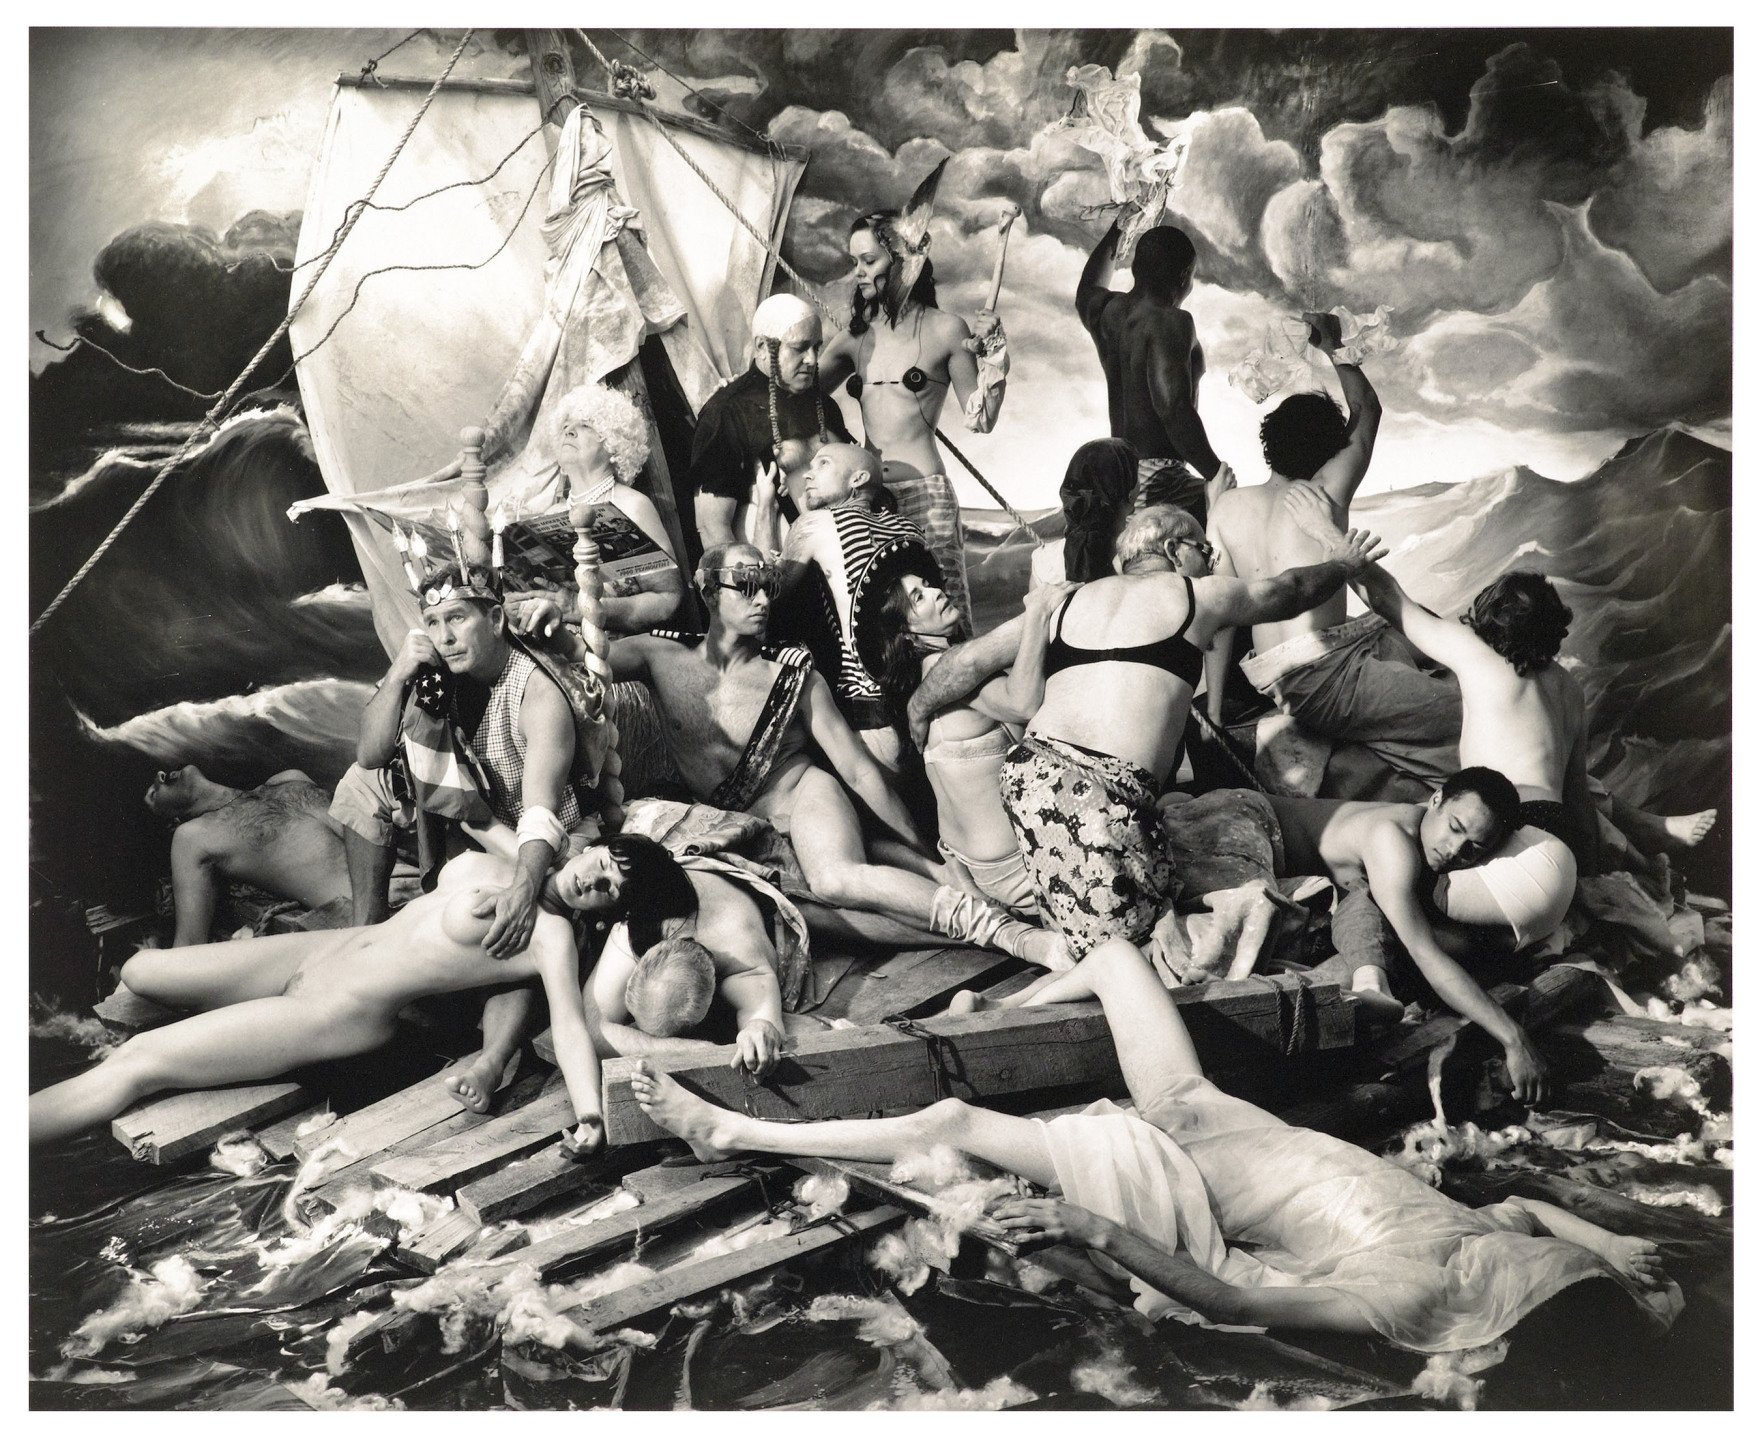 http://media.artspace.com/media/joel_peter_witkin/the_raft_of_george_w_bush/joel_peter_witkin_the_raft_of_george_w_bush_2560x1440.jpg?v=ae1a4880363c231169dcea31bce4e2a4